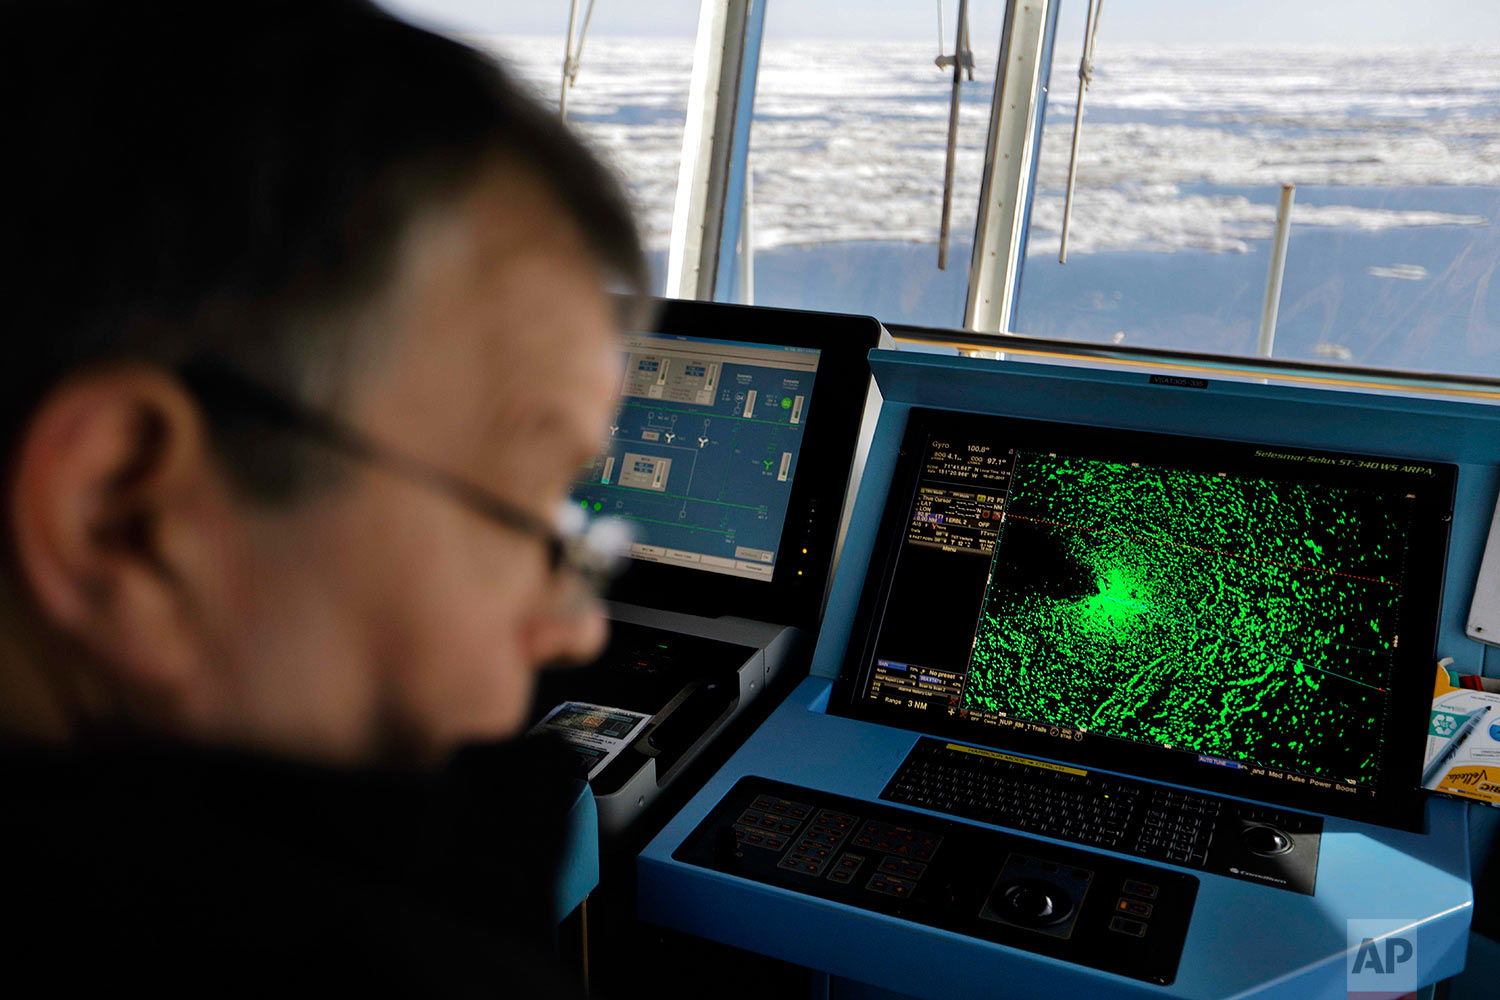 A radar shows sea ice ahead of the Finnish icebreaker MSV Nordica as chief officer Harri Venalainen navigates the ship through the Beaufort Sea while traversing the Arctic's Northwest Passage, Sunday, July 16, 2017. While icebreakers are equipped with sensitive radar systems, ultimately it's up to the ability and experience of the person at the helm to ensure the ship only breaks ice when it's unavoidable. (AP Photo/David Goldman)